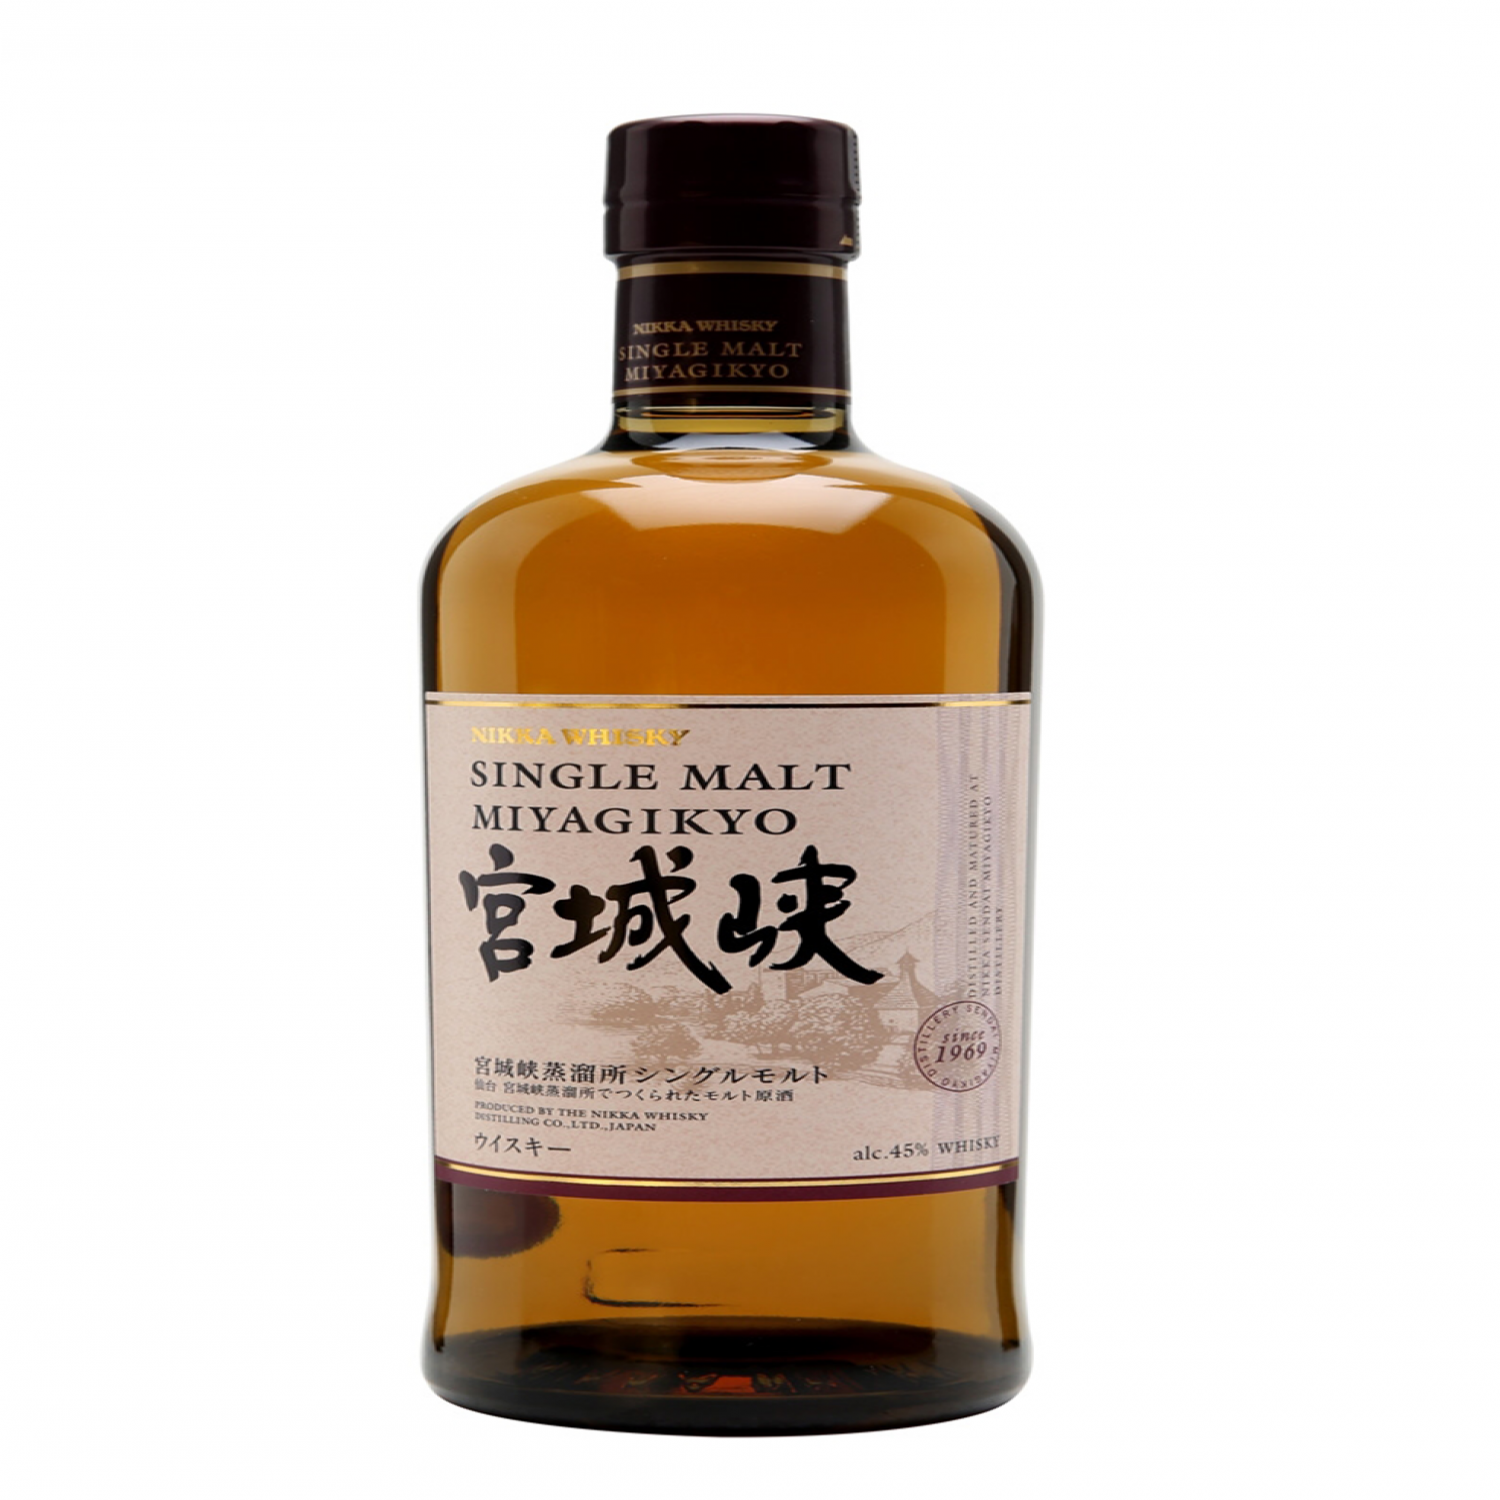 Rượu Nikka Miyagikyo Single Malt 45% 700ml